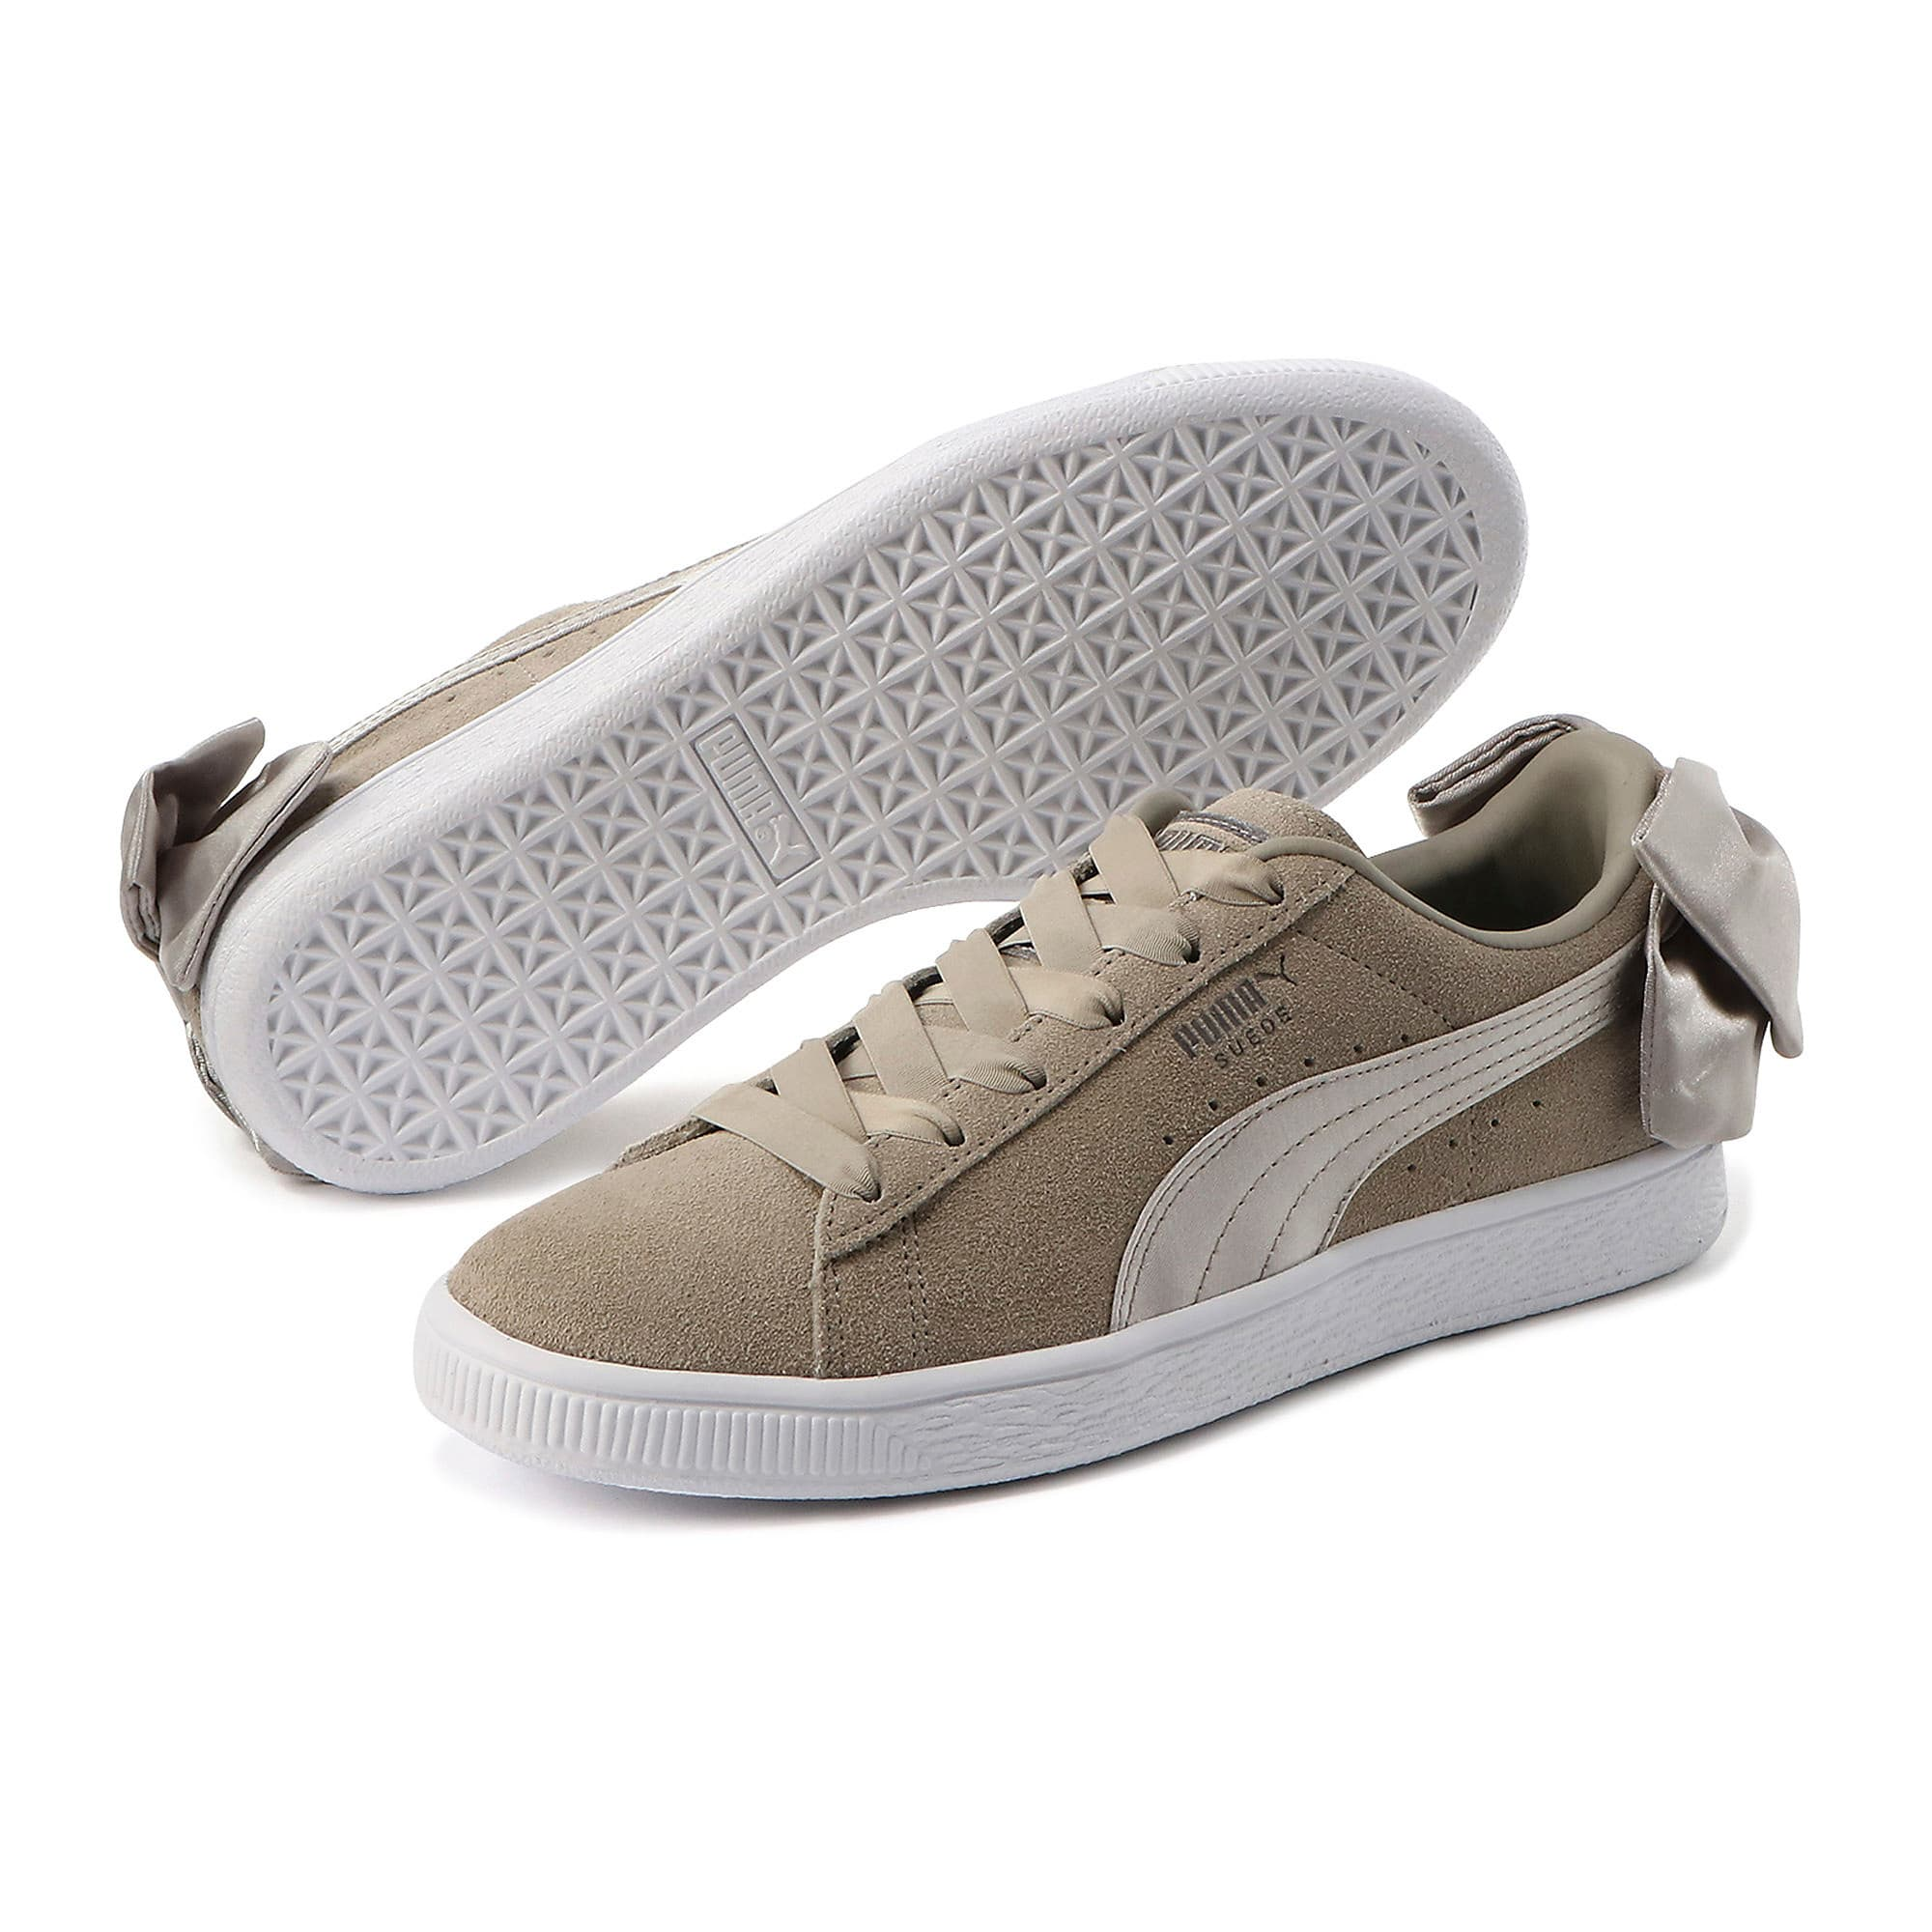 Thumbnail 2 of Suede Bow Women's Sneakers, Elephant Skin-Silver Cloud, medium